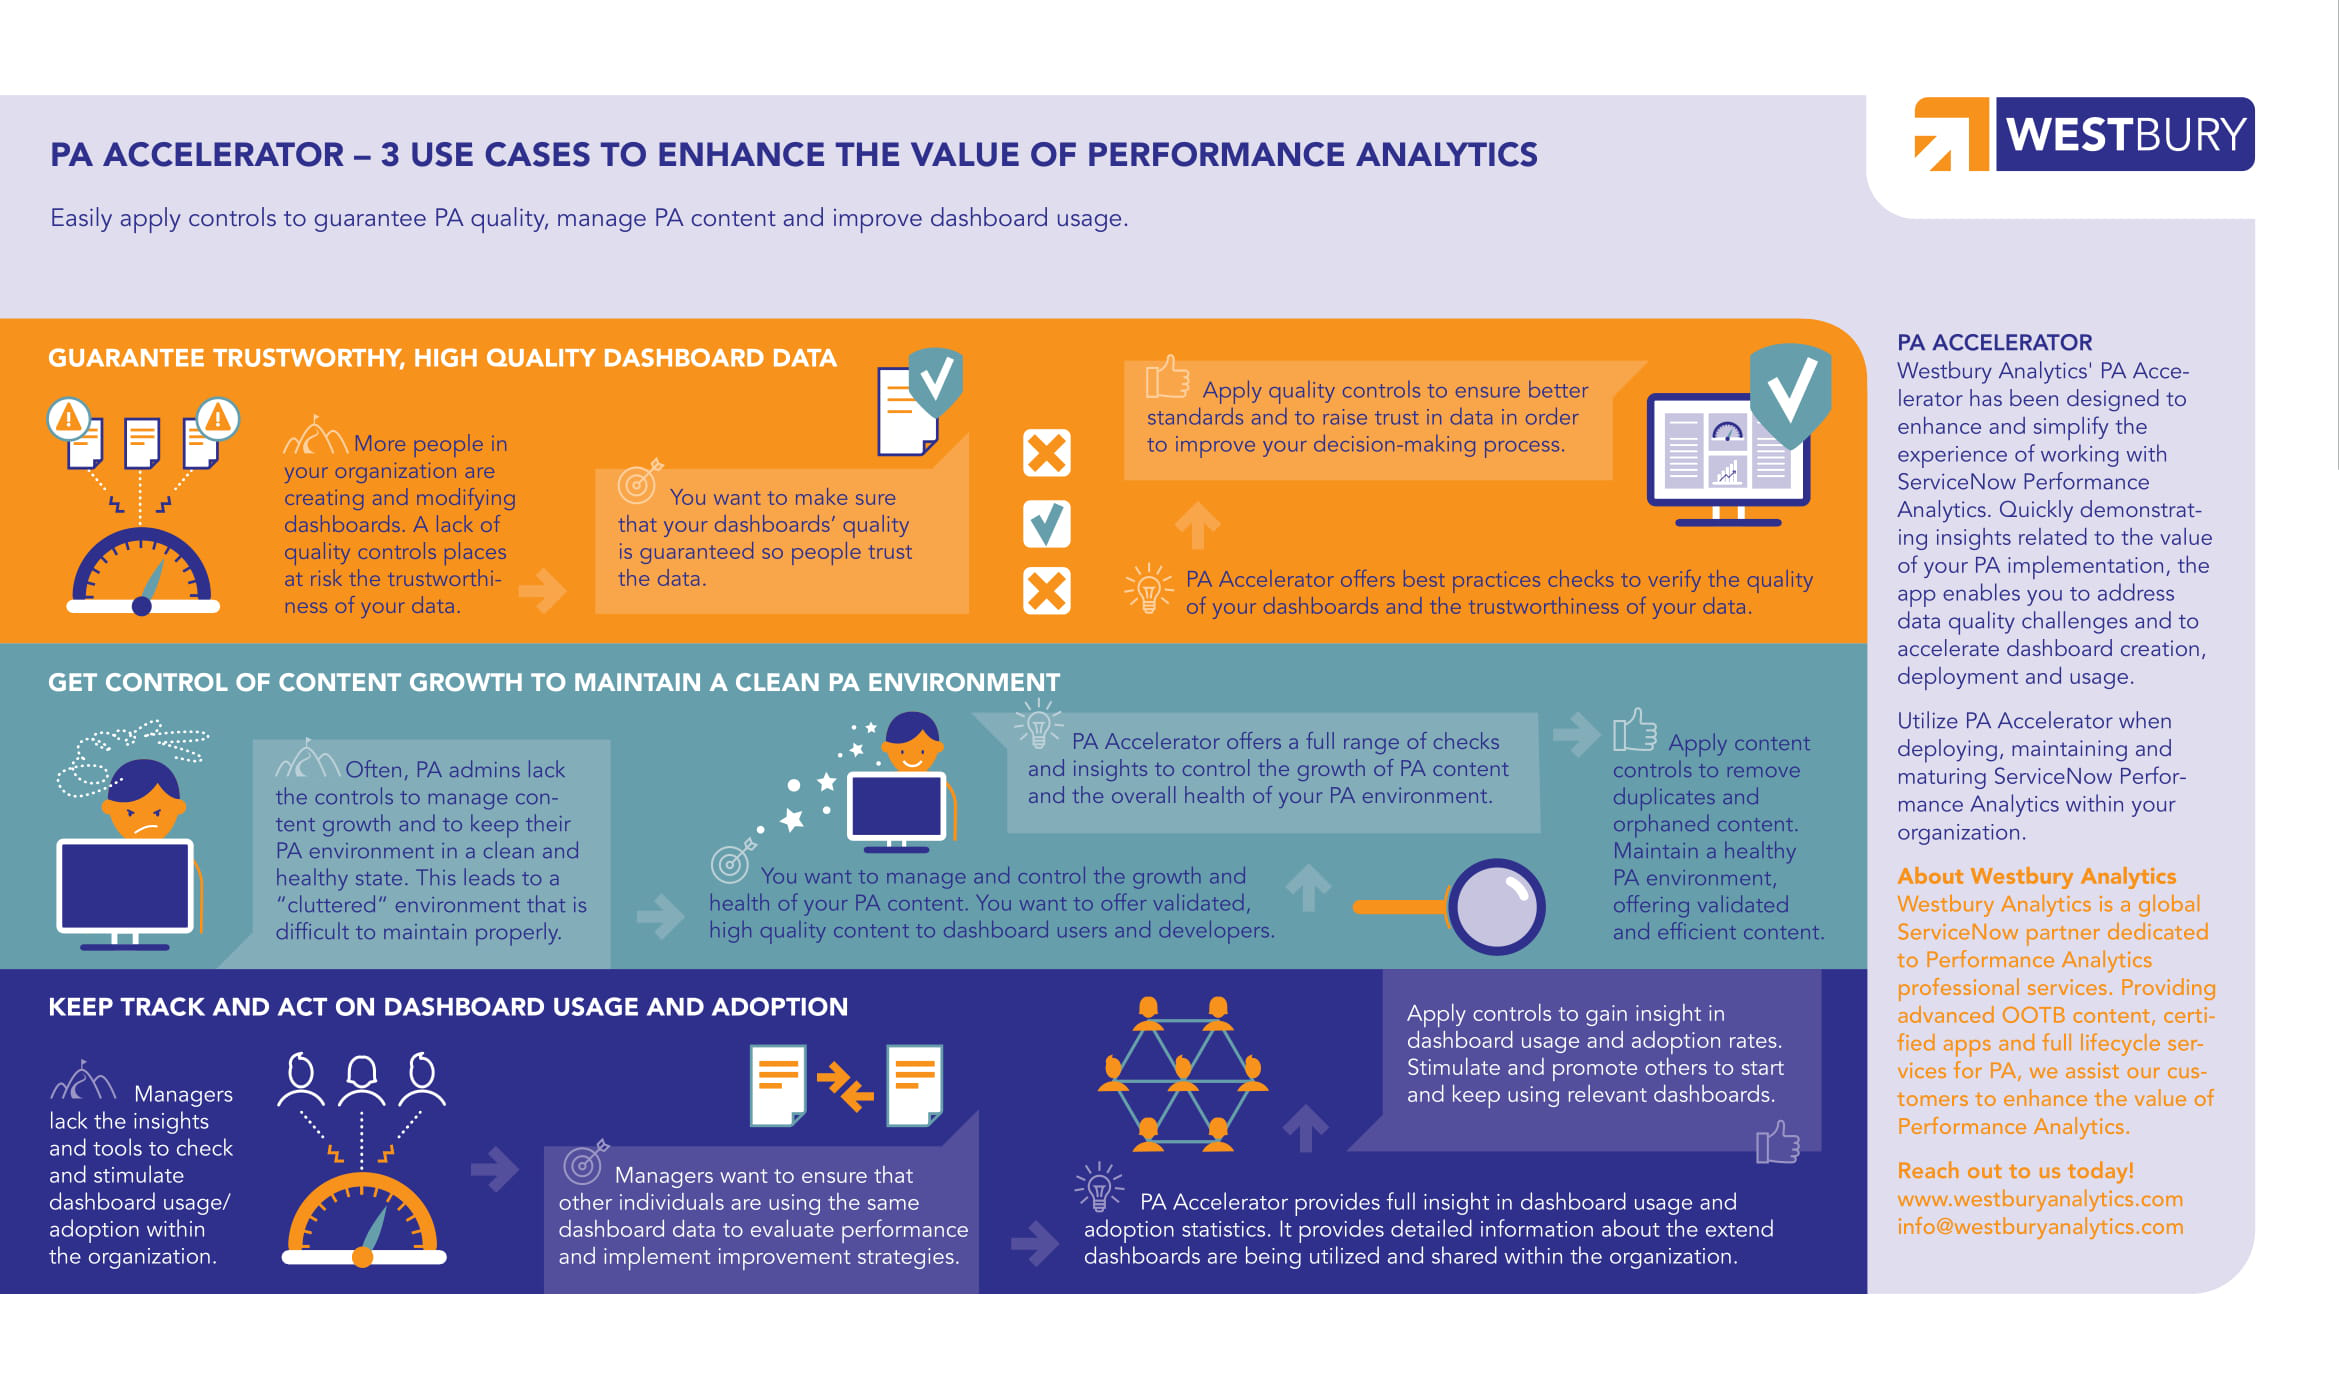 3 use cases to enhance the value of ServiceNow Performance Analytics